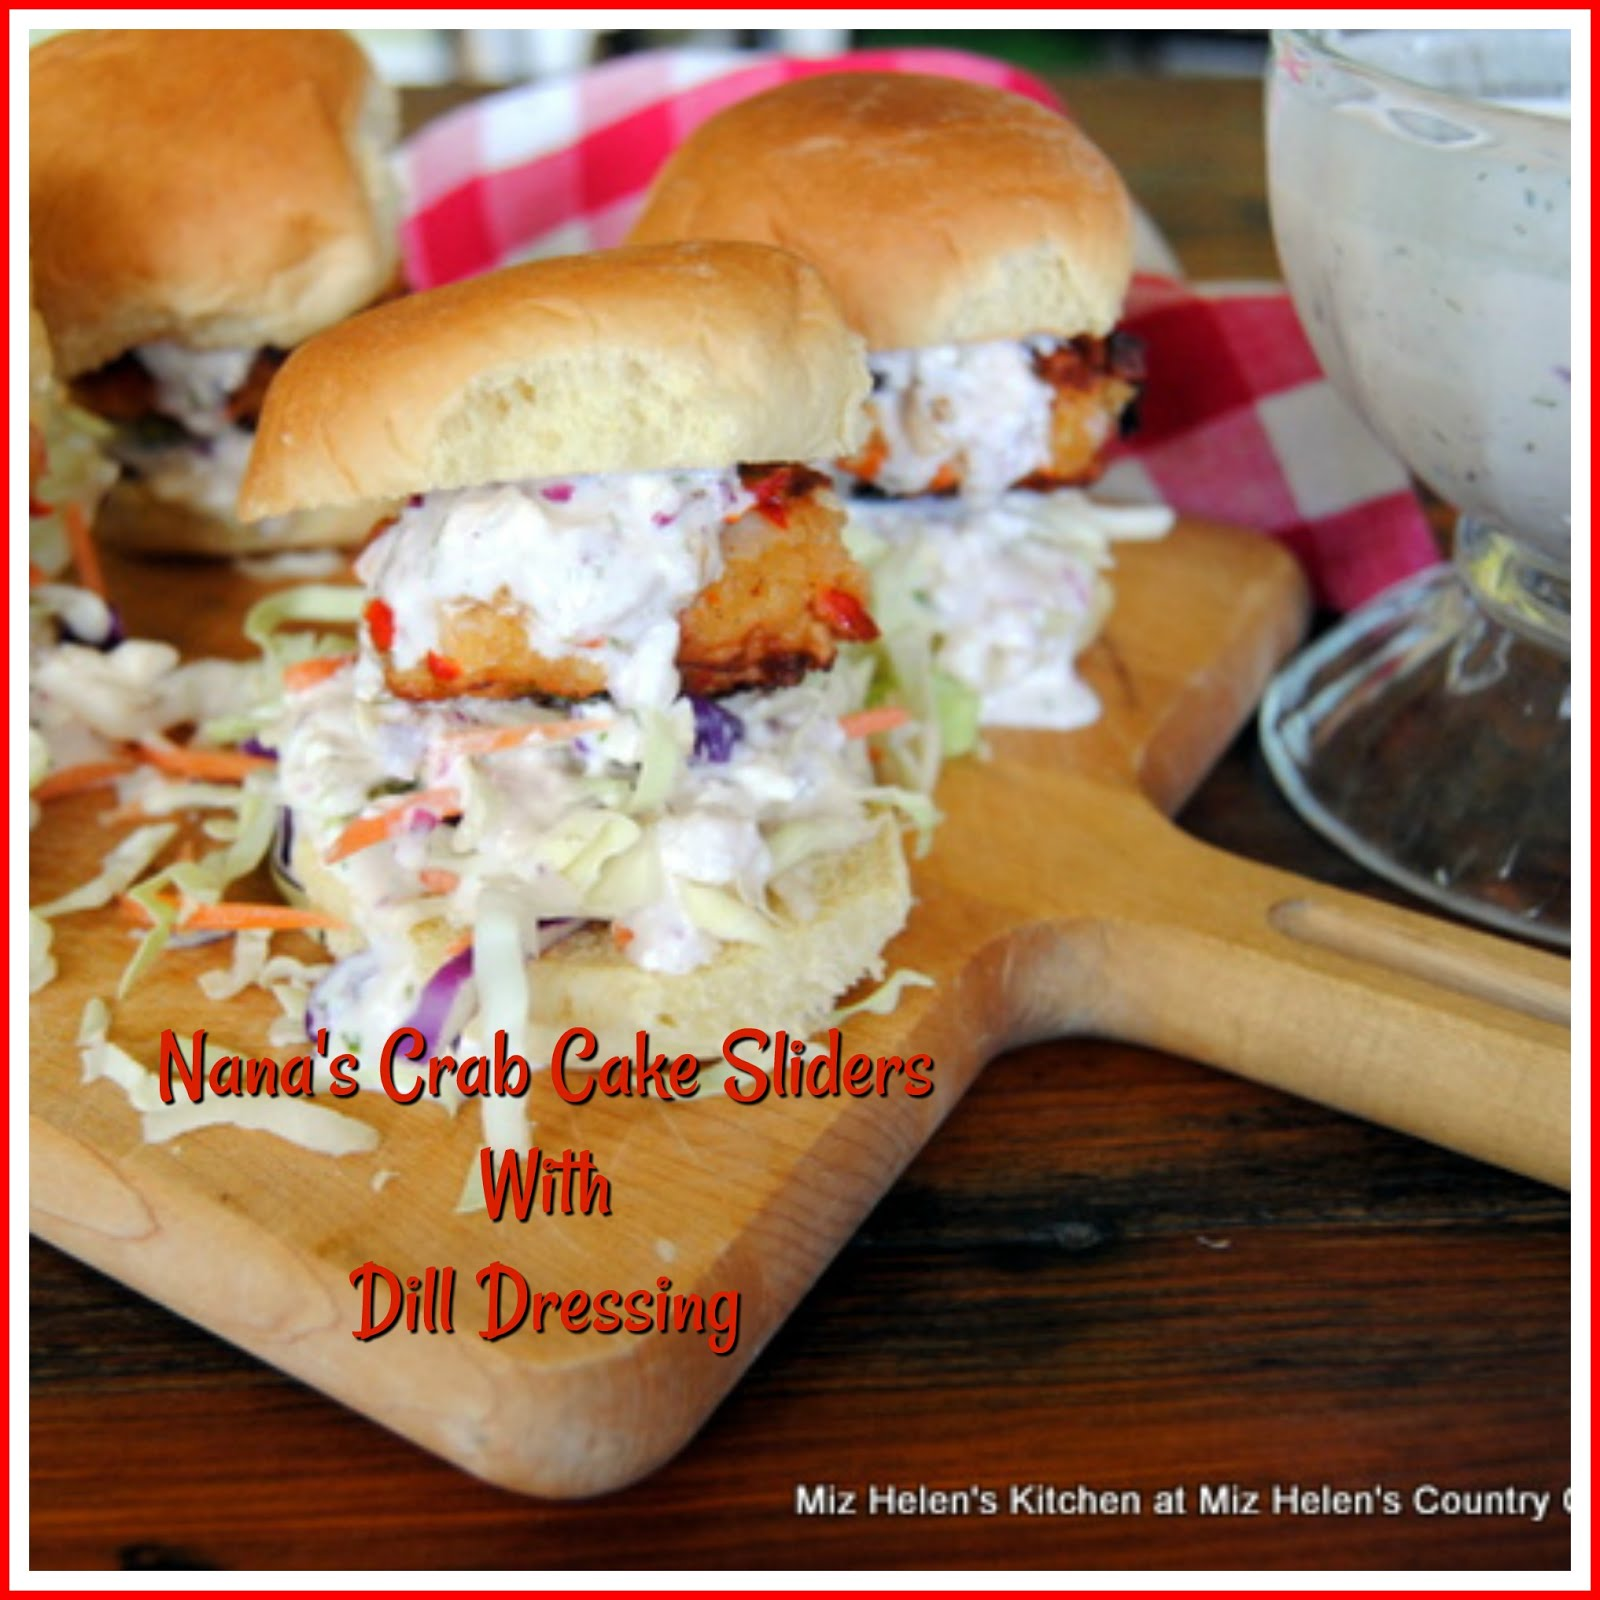 Nana's Crab Cake Sliders With Dill Dressing